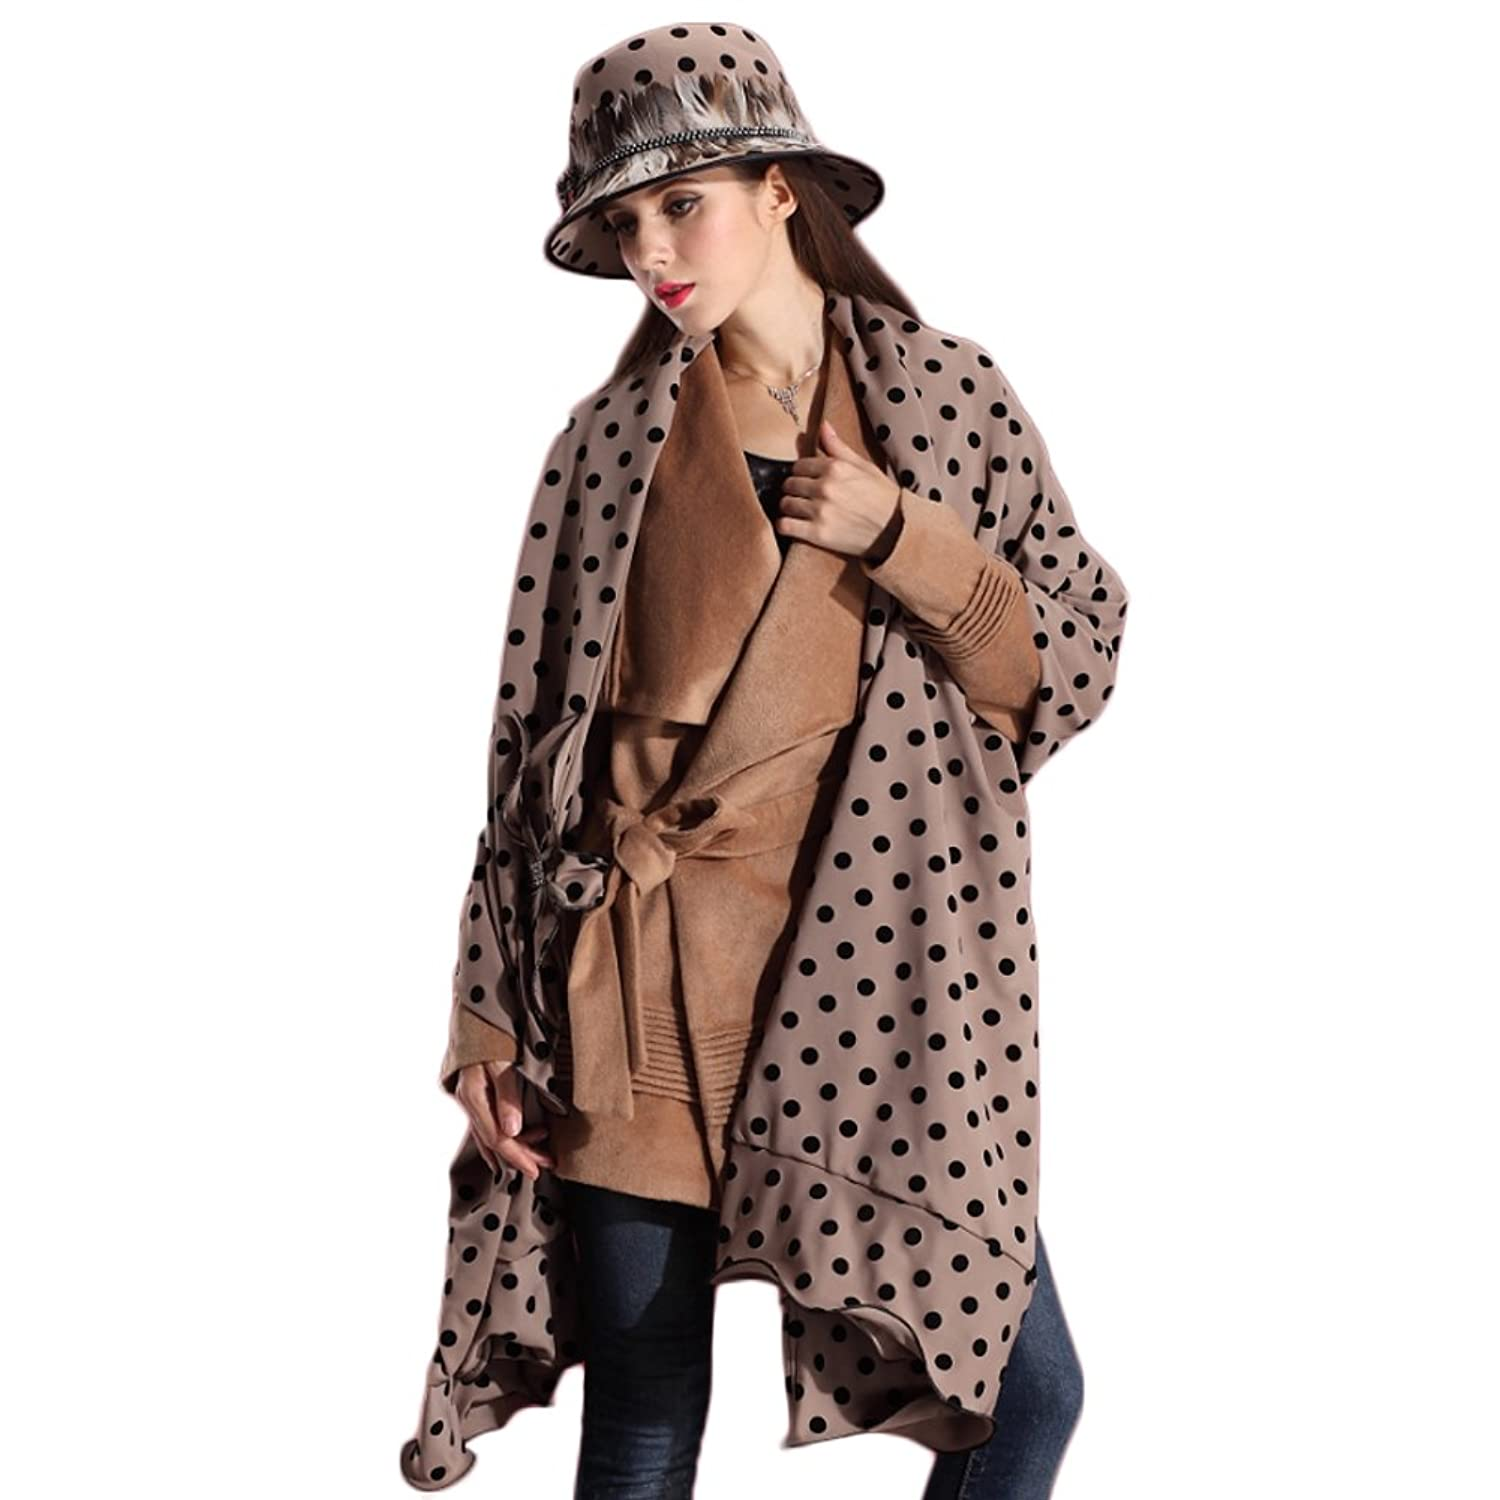 June's Young Damen-Hüte Samthut Winter Herbst Cape Kopfschmuck Top hat Polka Dot cooler Hut